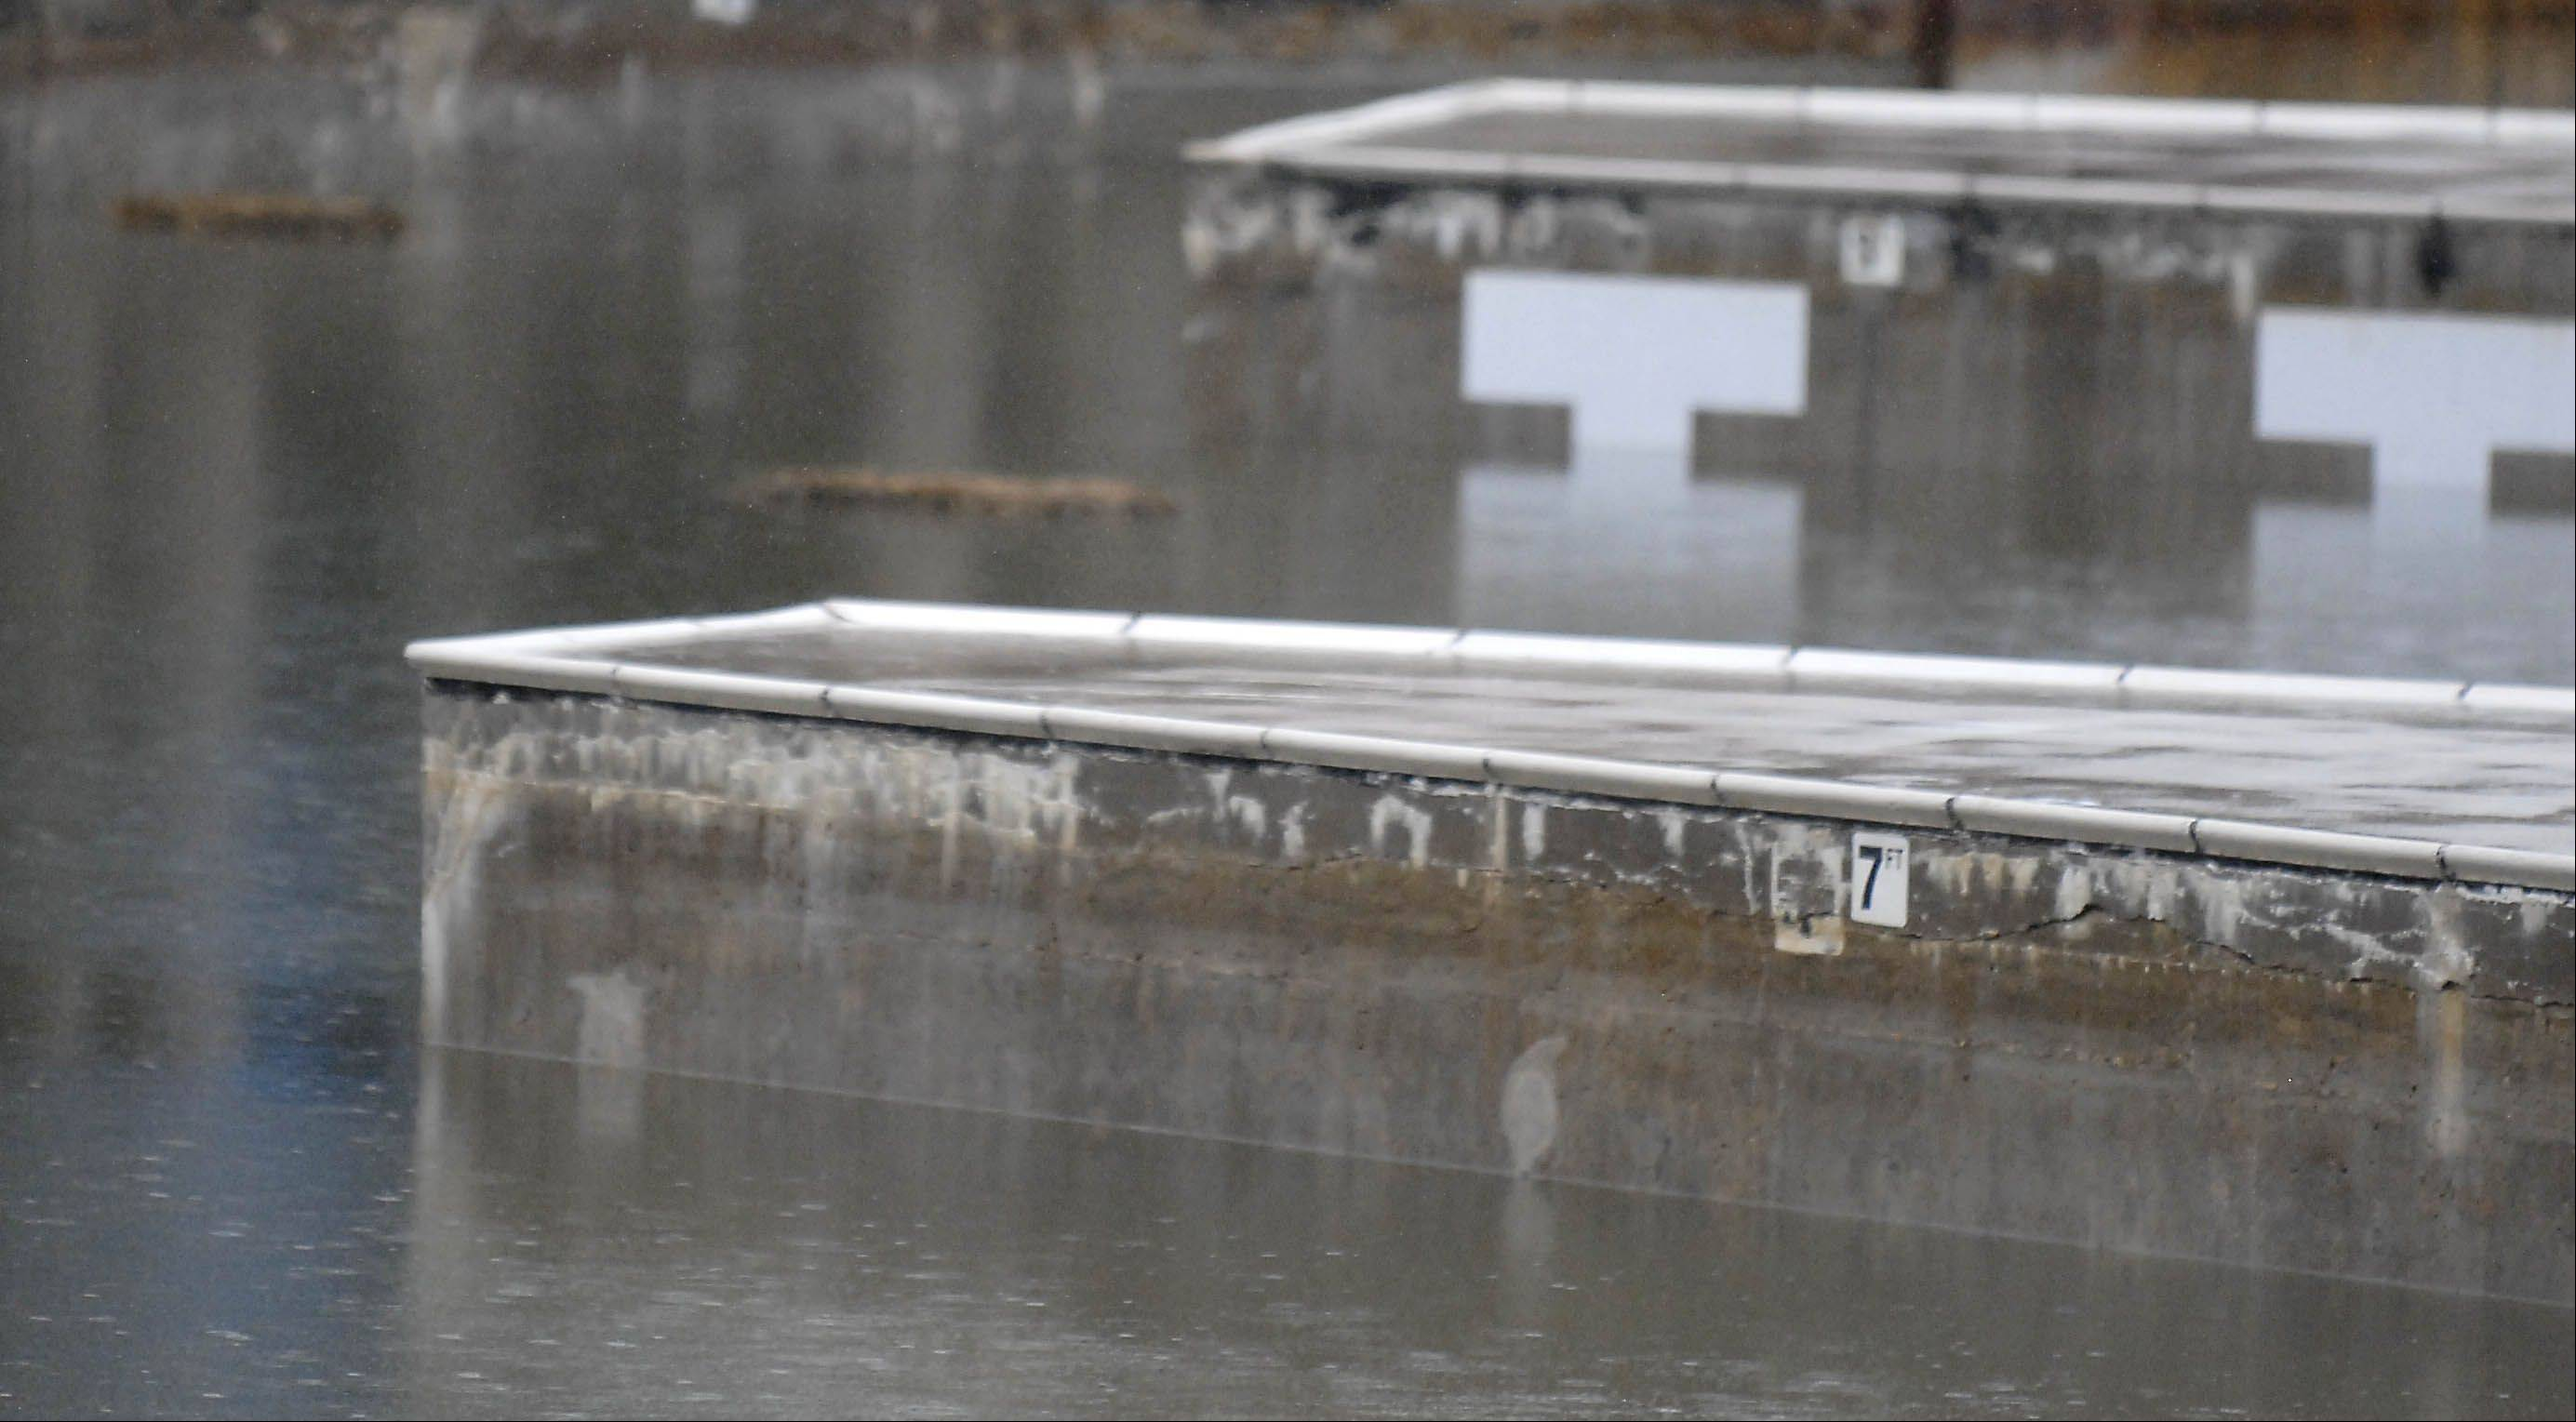 Batavia's Harold Hall Quarry Beach is filled with rain water Tuesday, preventing preparation work to open for the summer season.